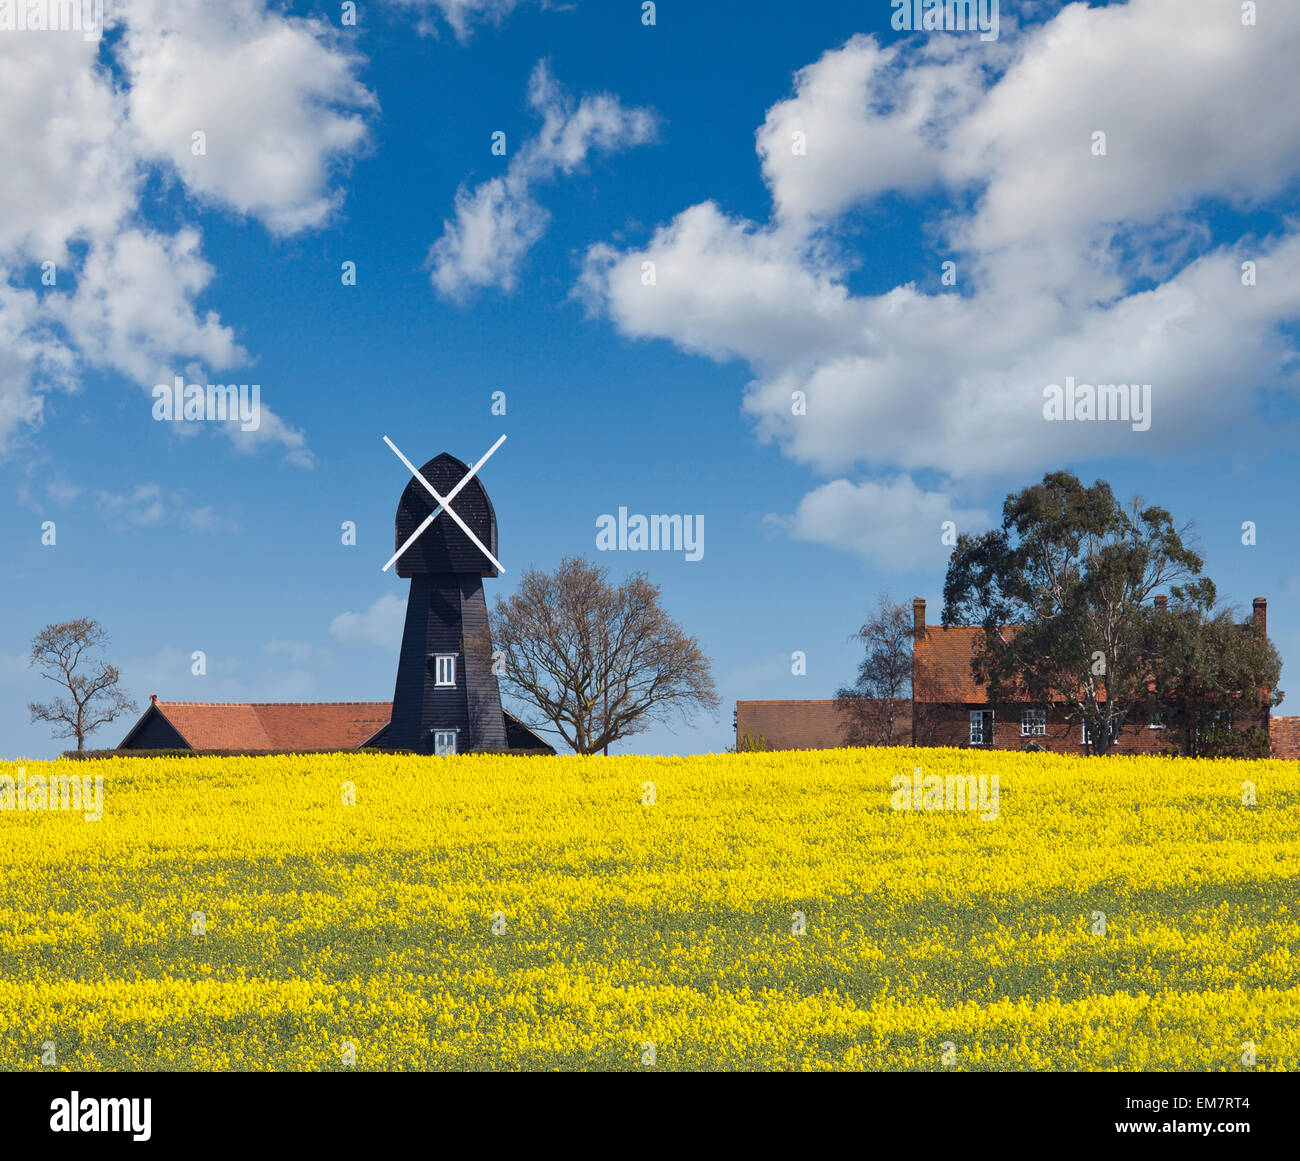 Chislet windmill. - Stock Image